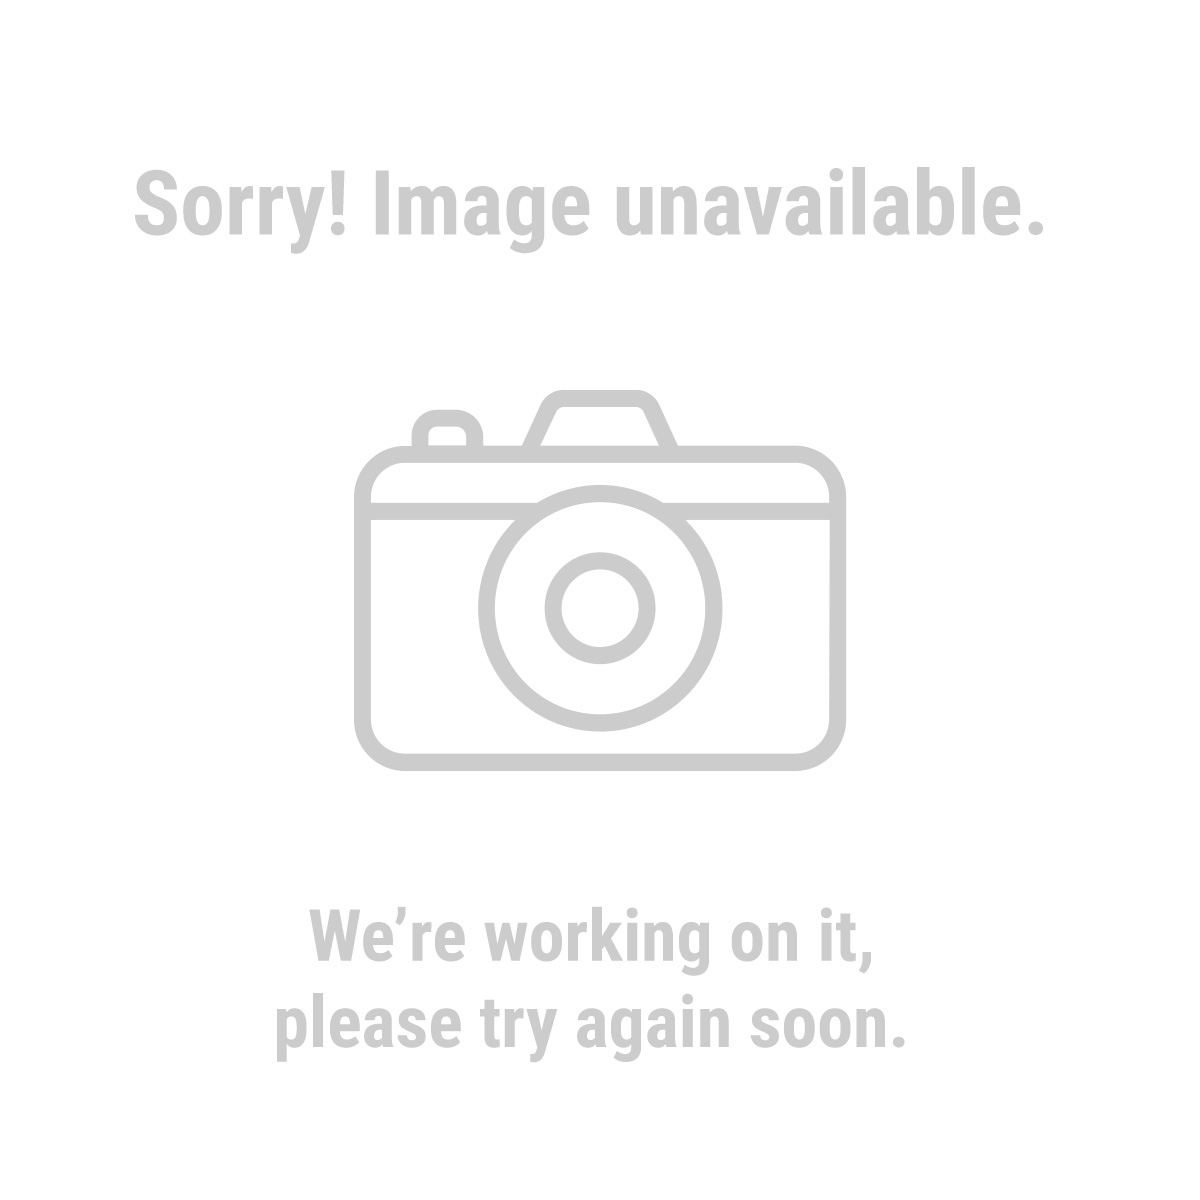 Chicago Electric Welding 41054 1 Pair Fire Resistant Welding Gloves